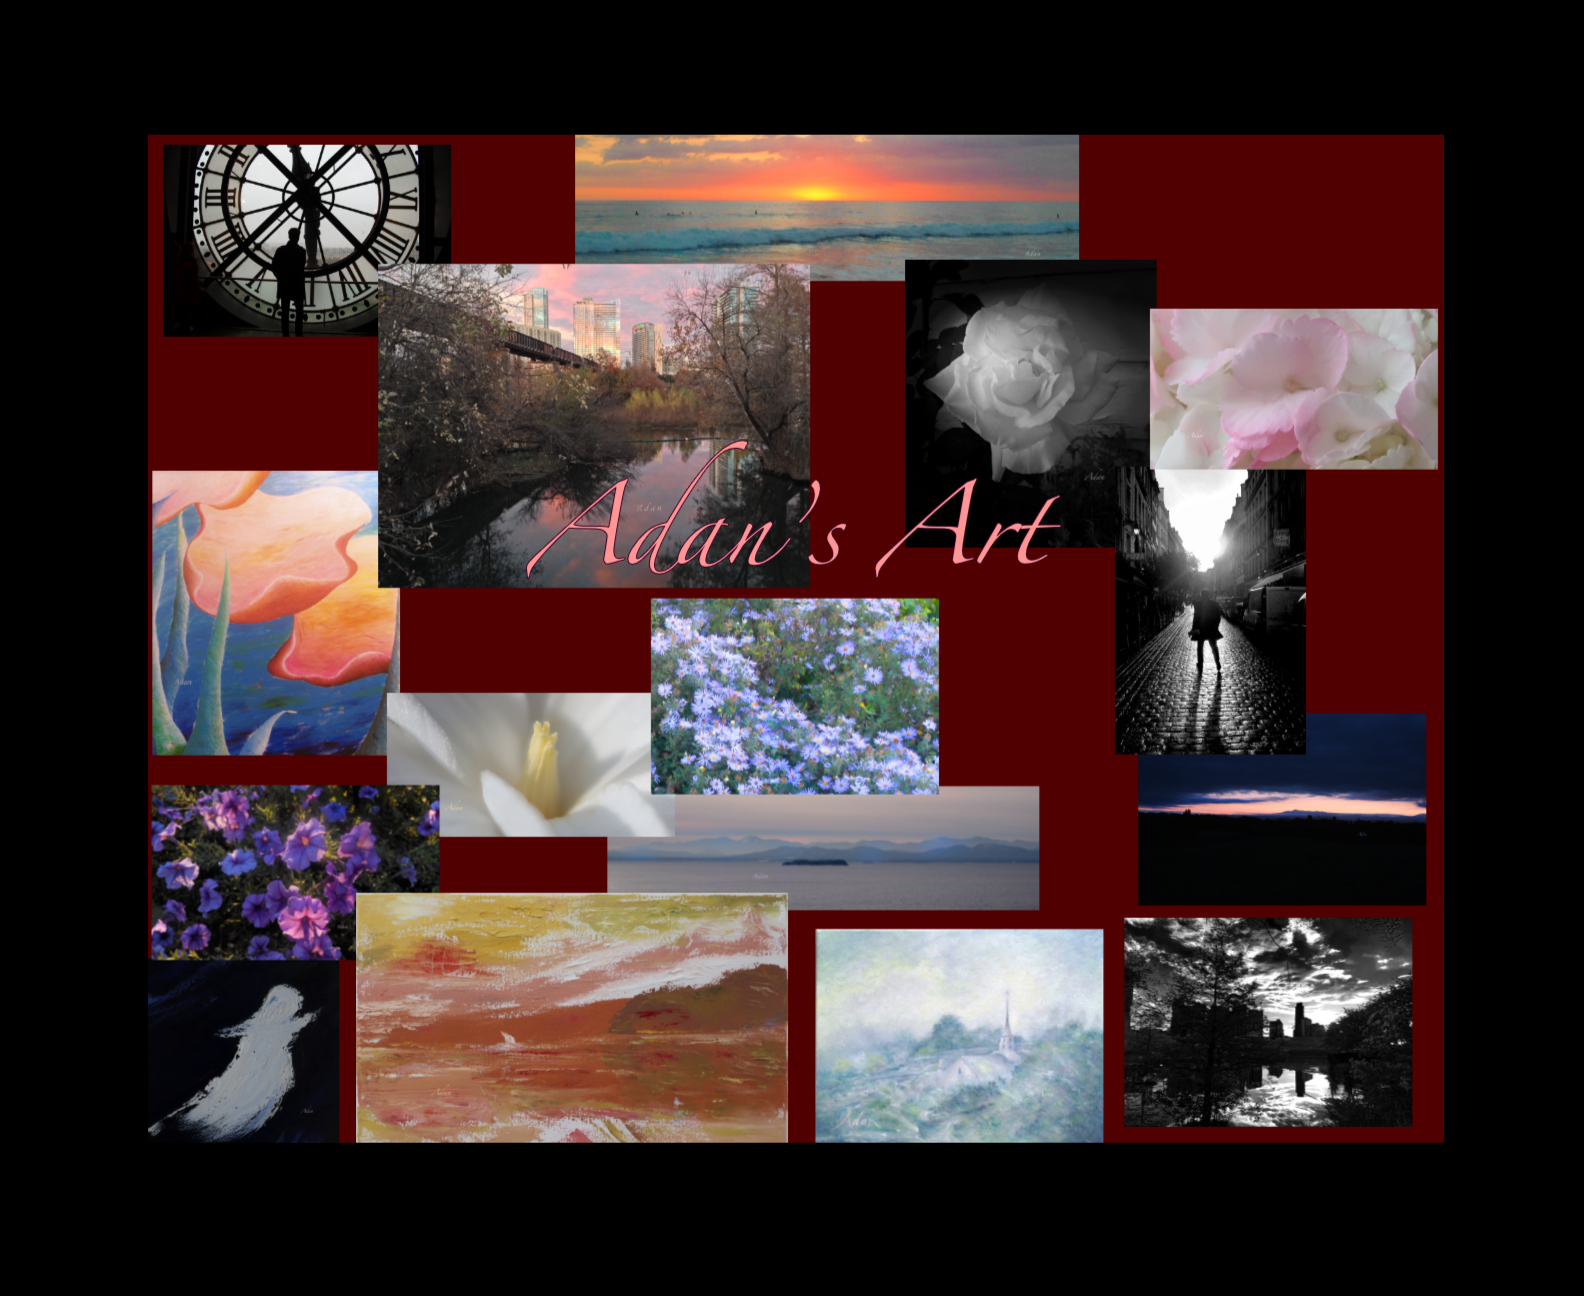 Paintings Photography and Digital Designs by Felipe Adan Lerma. From Paris to Vermont, Costa Rica to Austin and Galveston, including florals, sunsets, Black and White, and gift writings from Mom to the Rule of Law. @ www.FelipeAdanLerma.com .